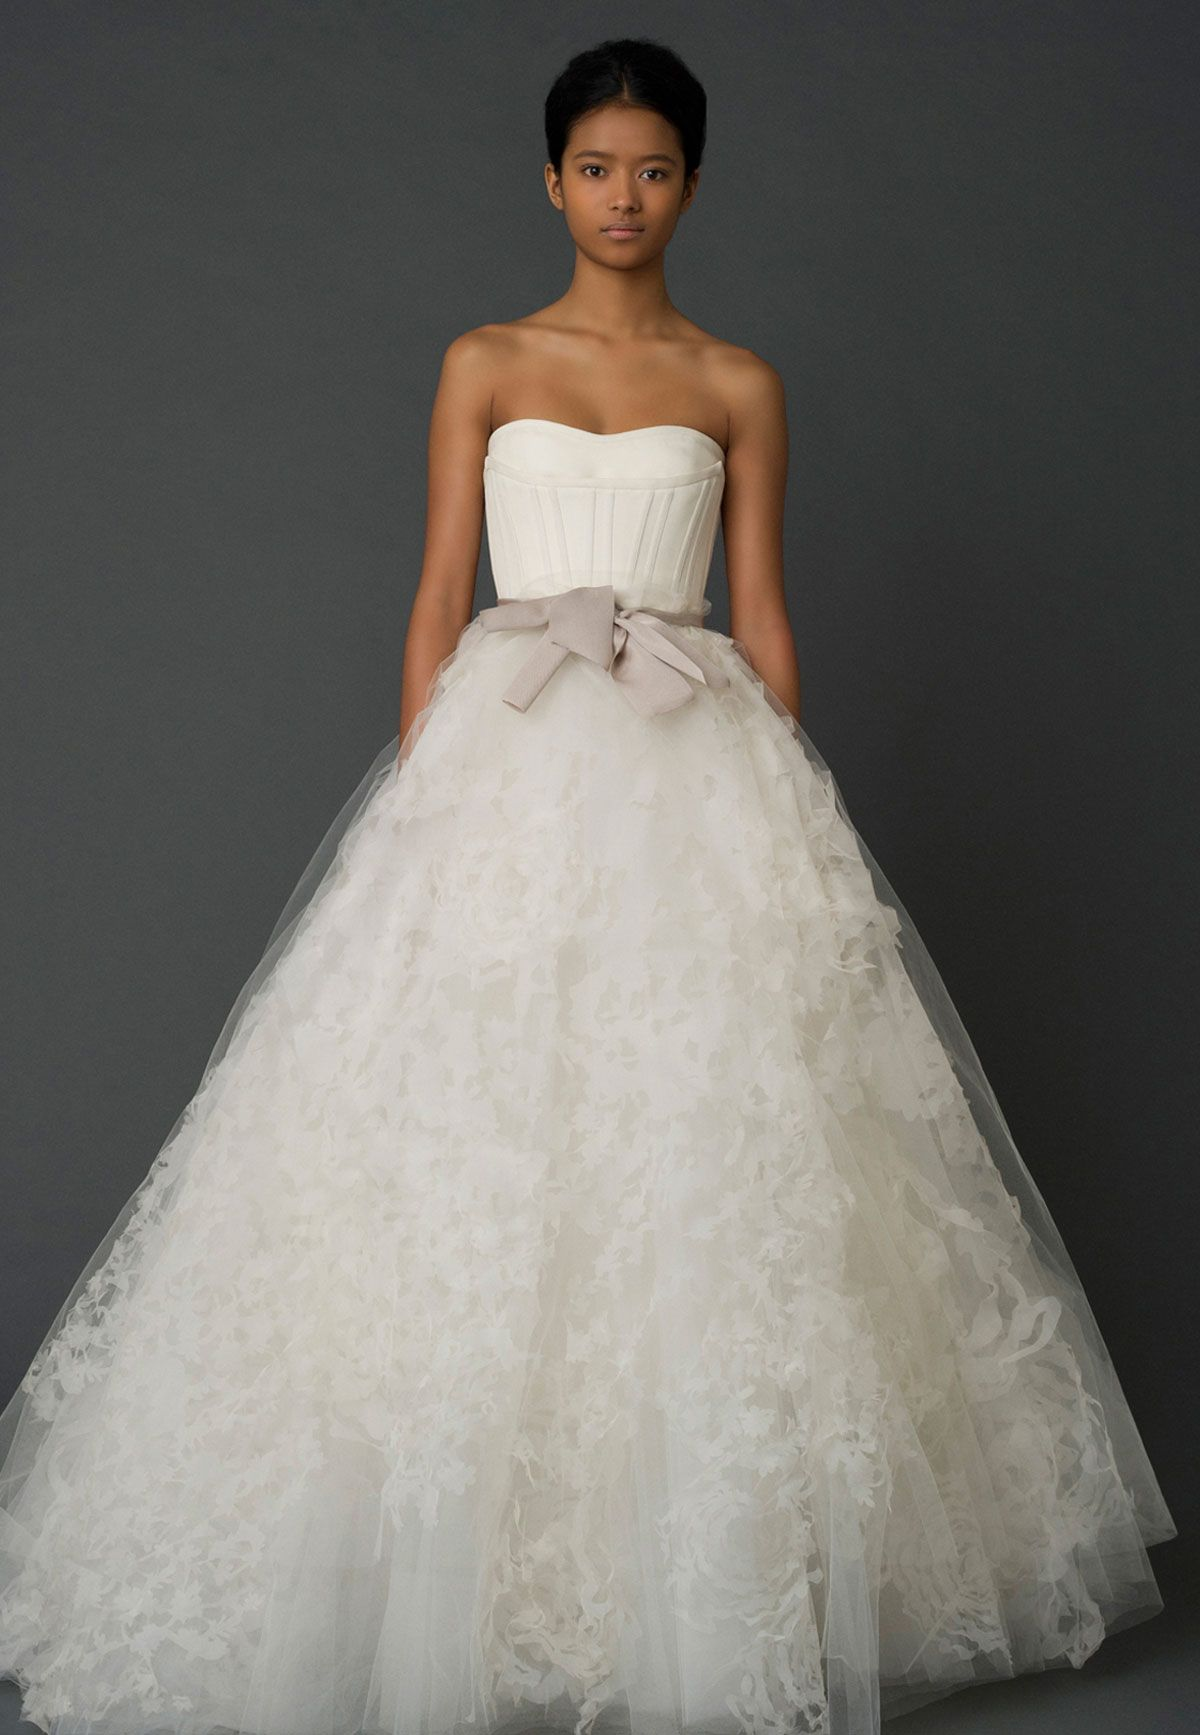 Wedding dresses bridal gowns by vera wang spring 2012 for Vera wang princess ball gown wedding dress